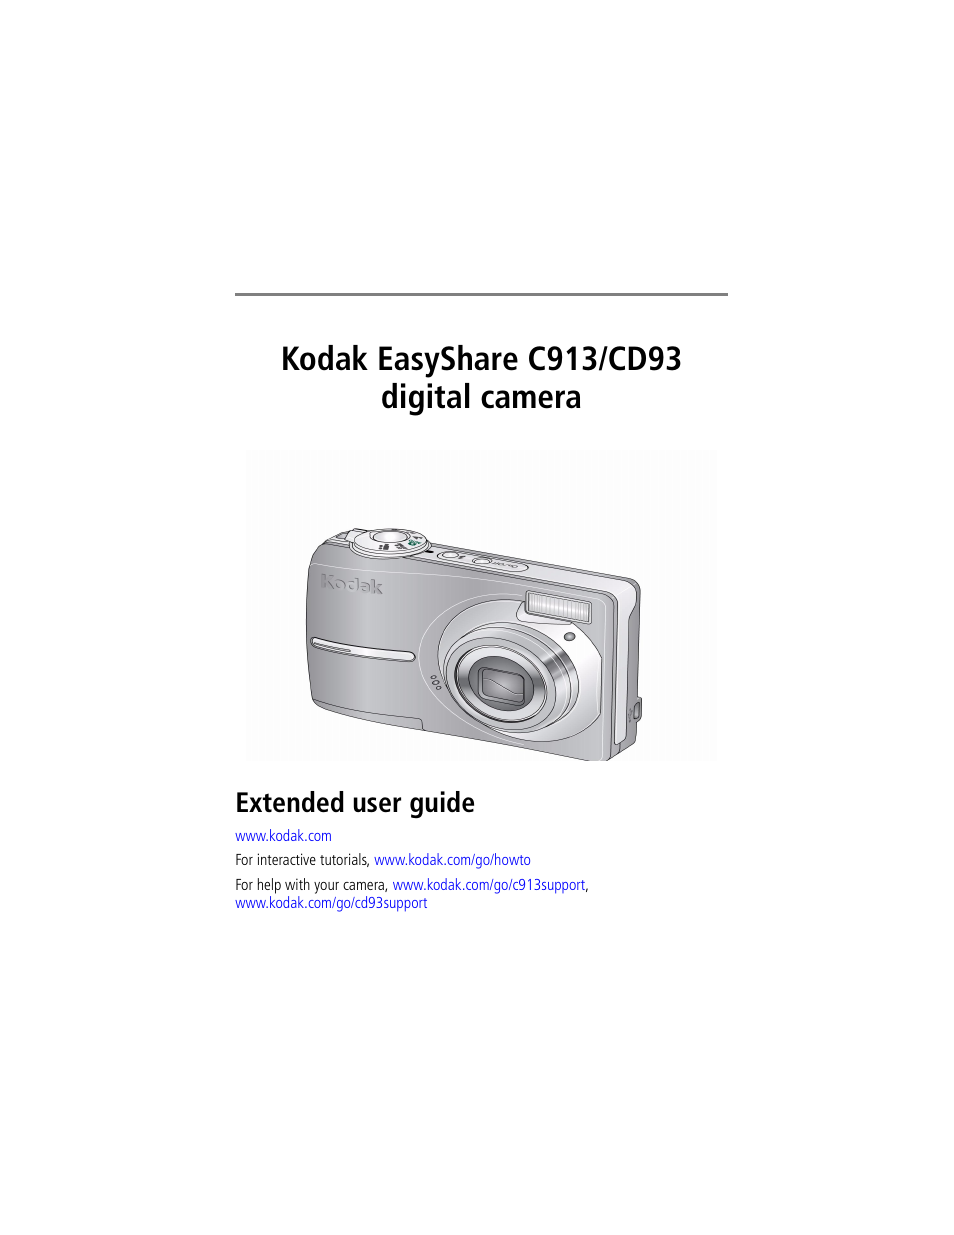 kodak cd913 user manual 67 pages also for easyshare c913 c913 rh manualsdir com kodak easyshare c913 manual español Kodak EasyShare Software